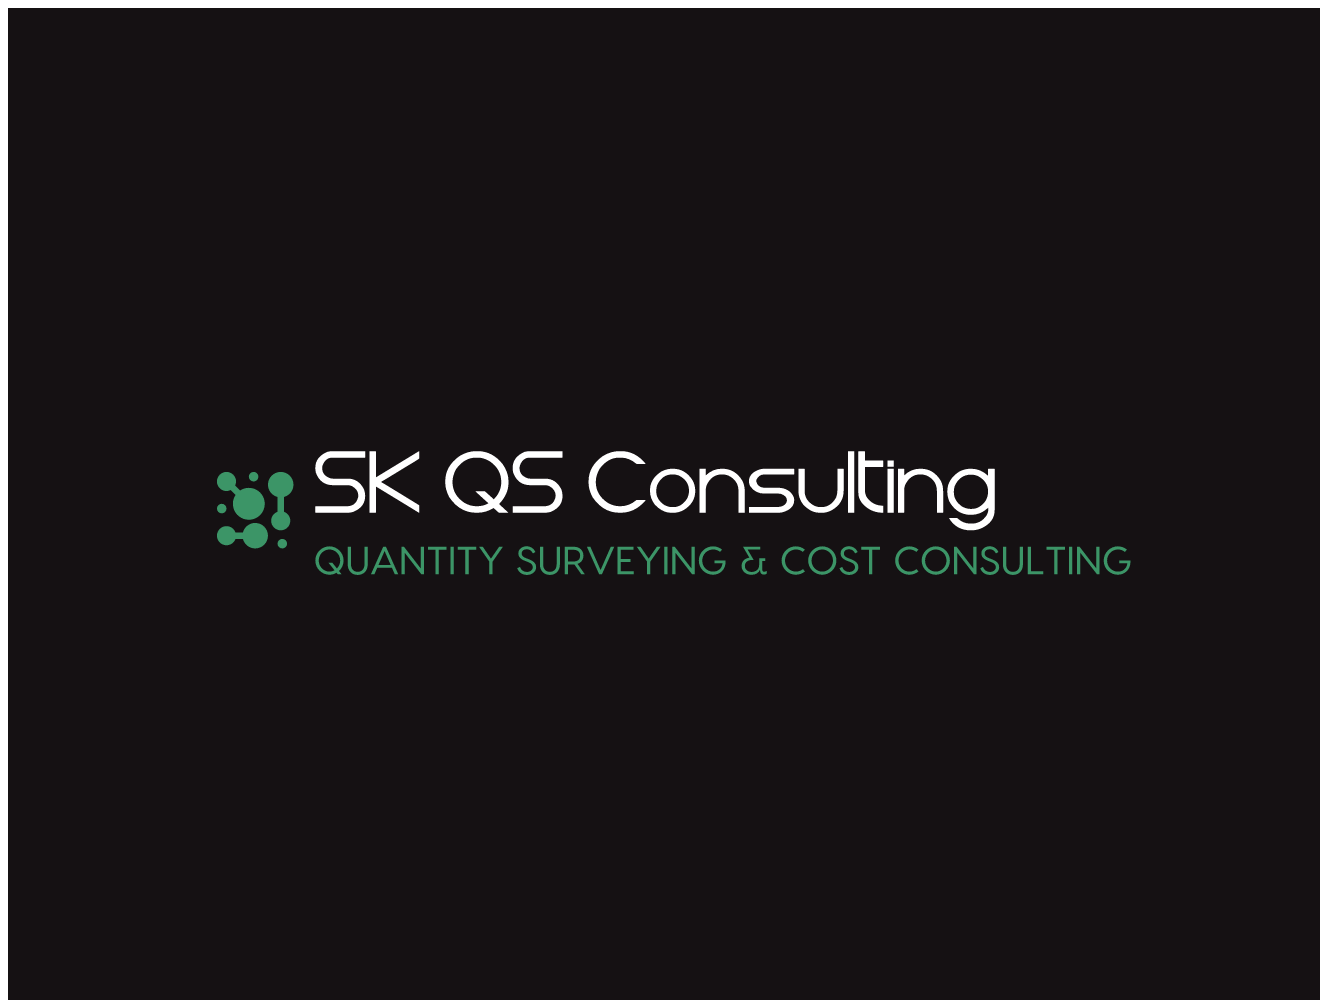 SK QS Consulting primary image